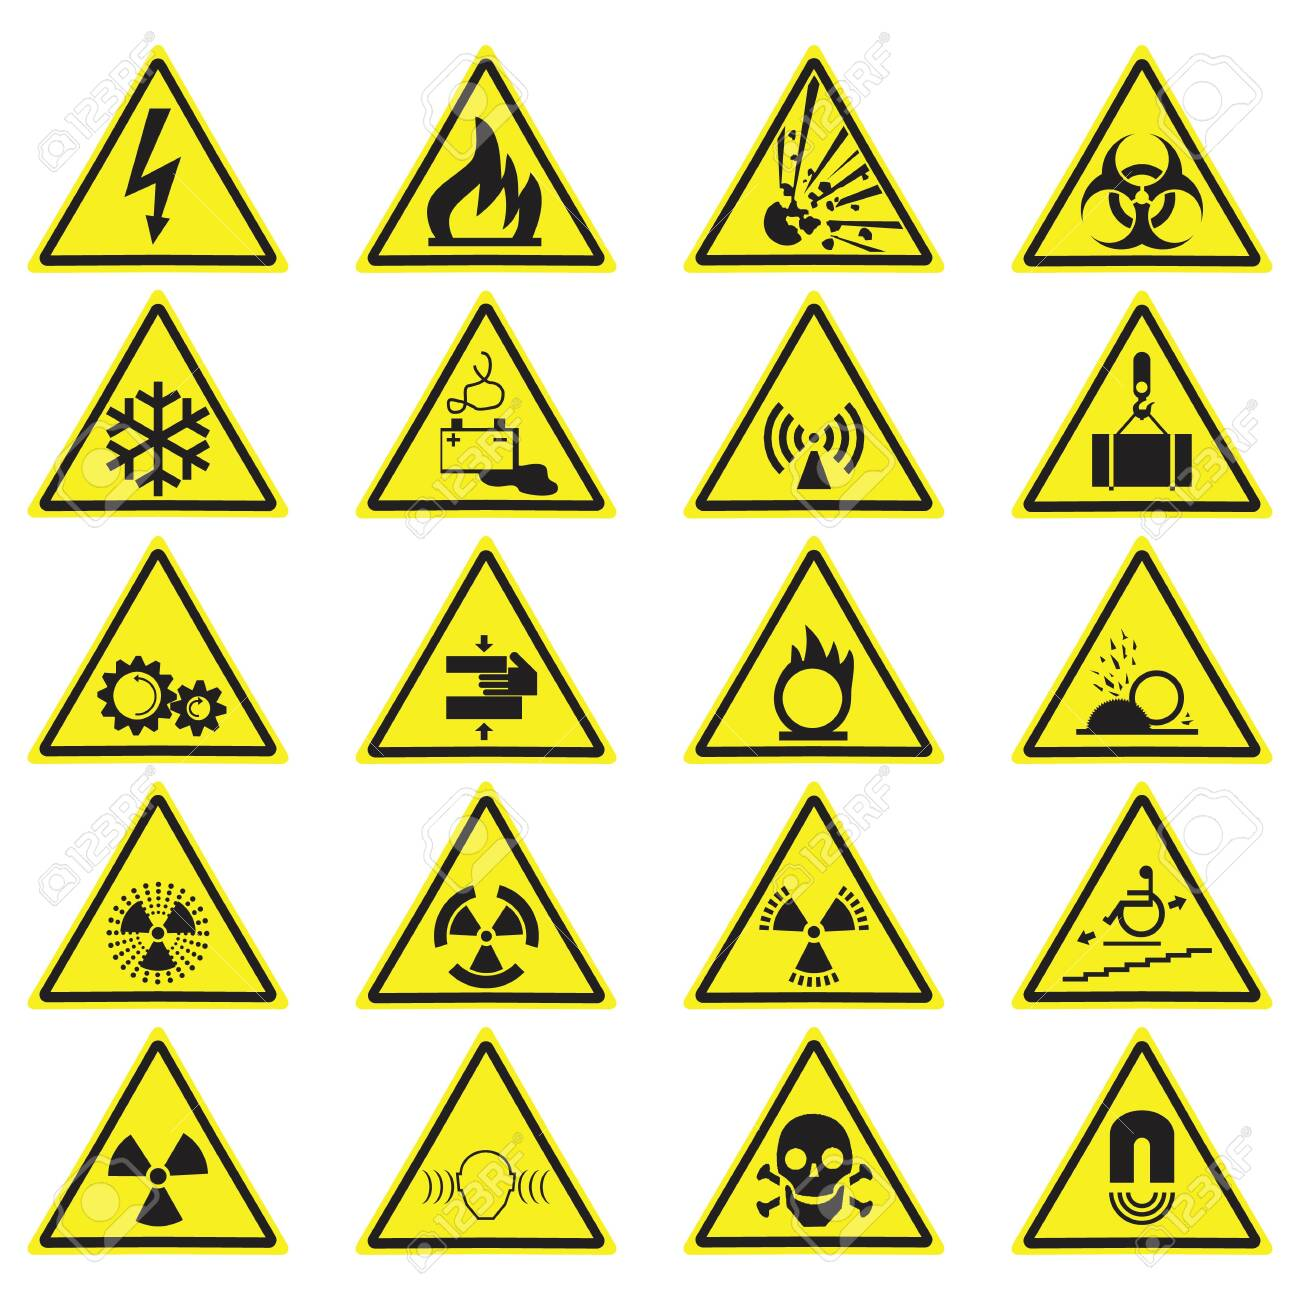 Warning Hazard Yellow Triangle Signs Set. Vector symbols isolated on white. - 121201457